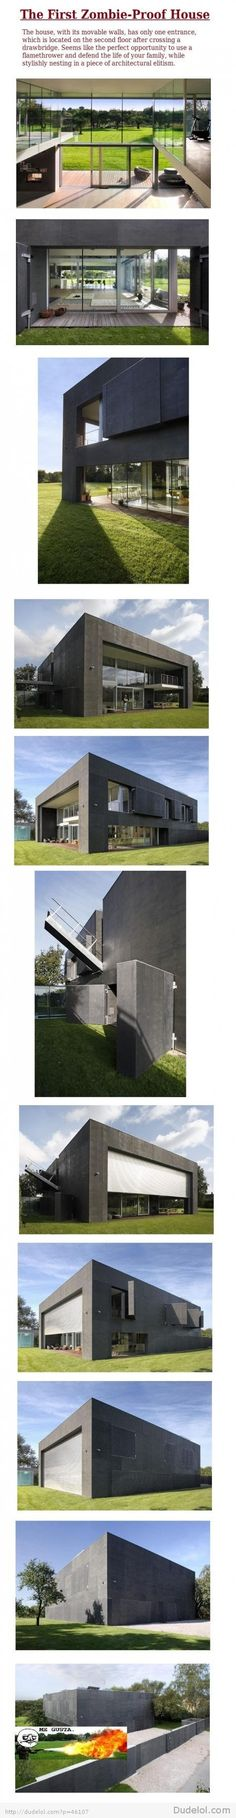 {Zombie-Proof House} Fanfuckingtasticly cool!!